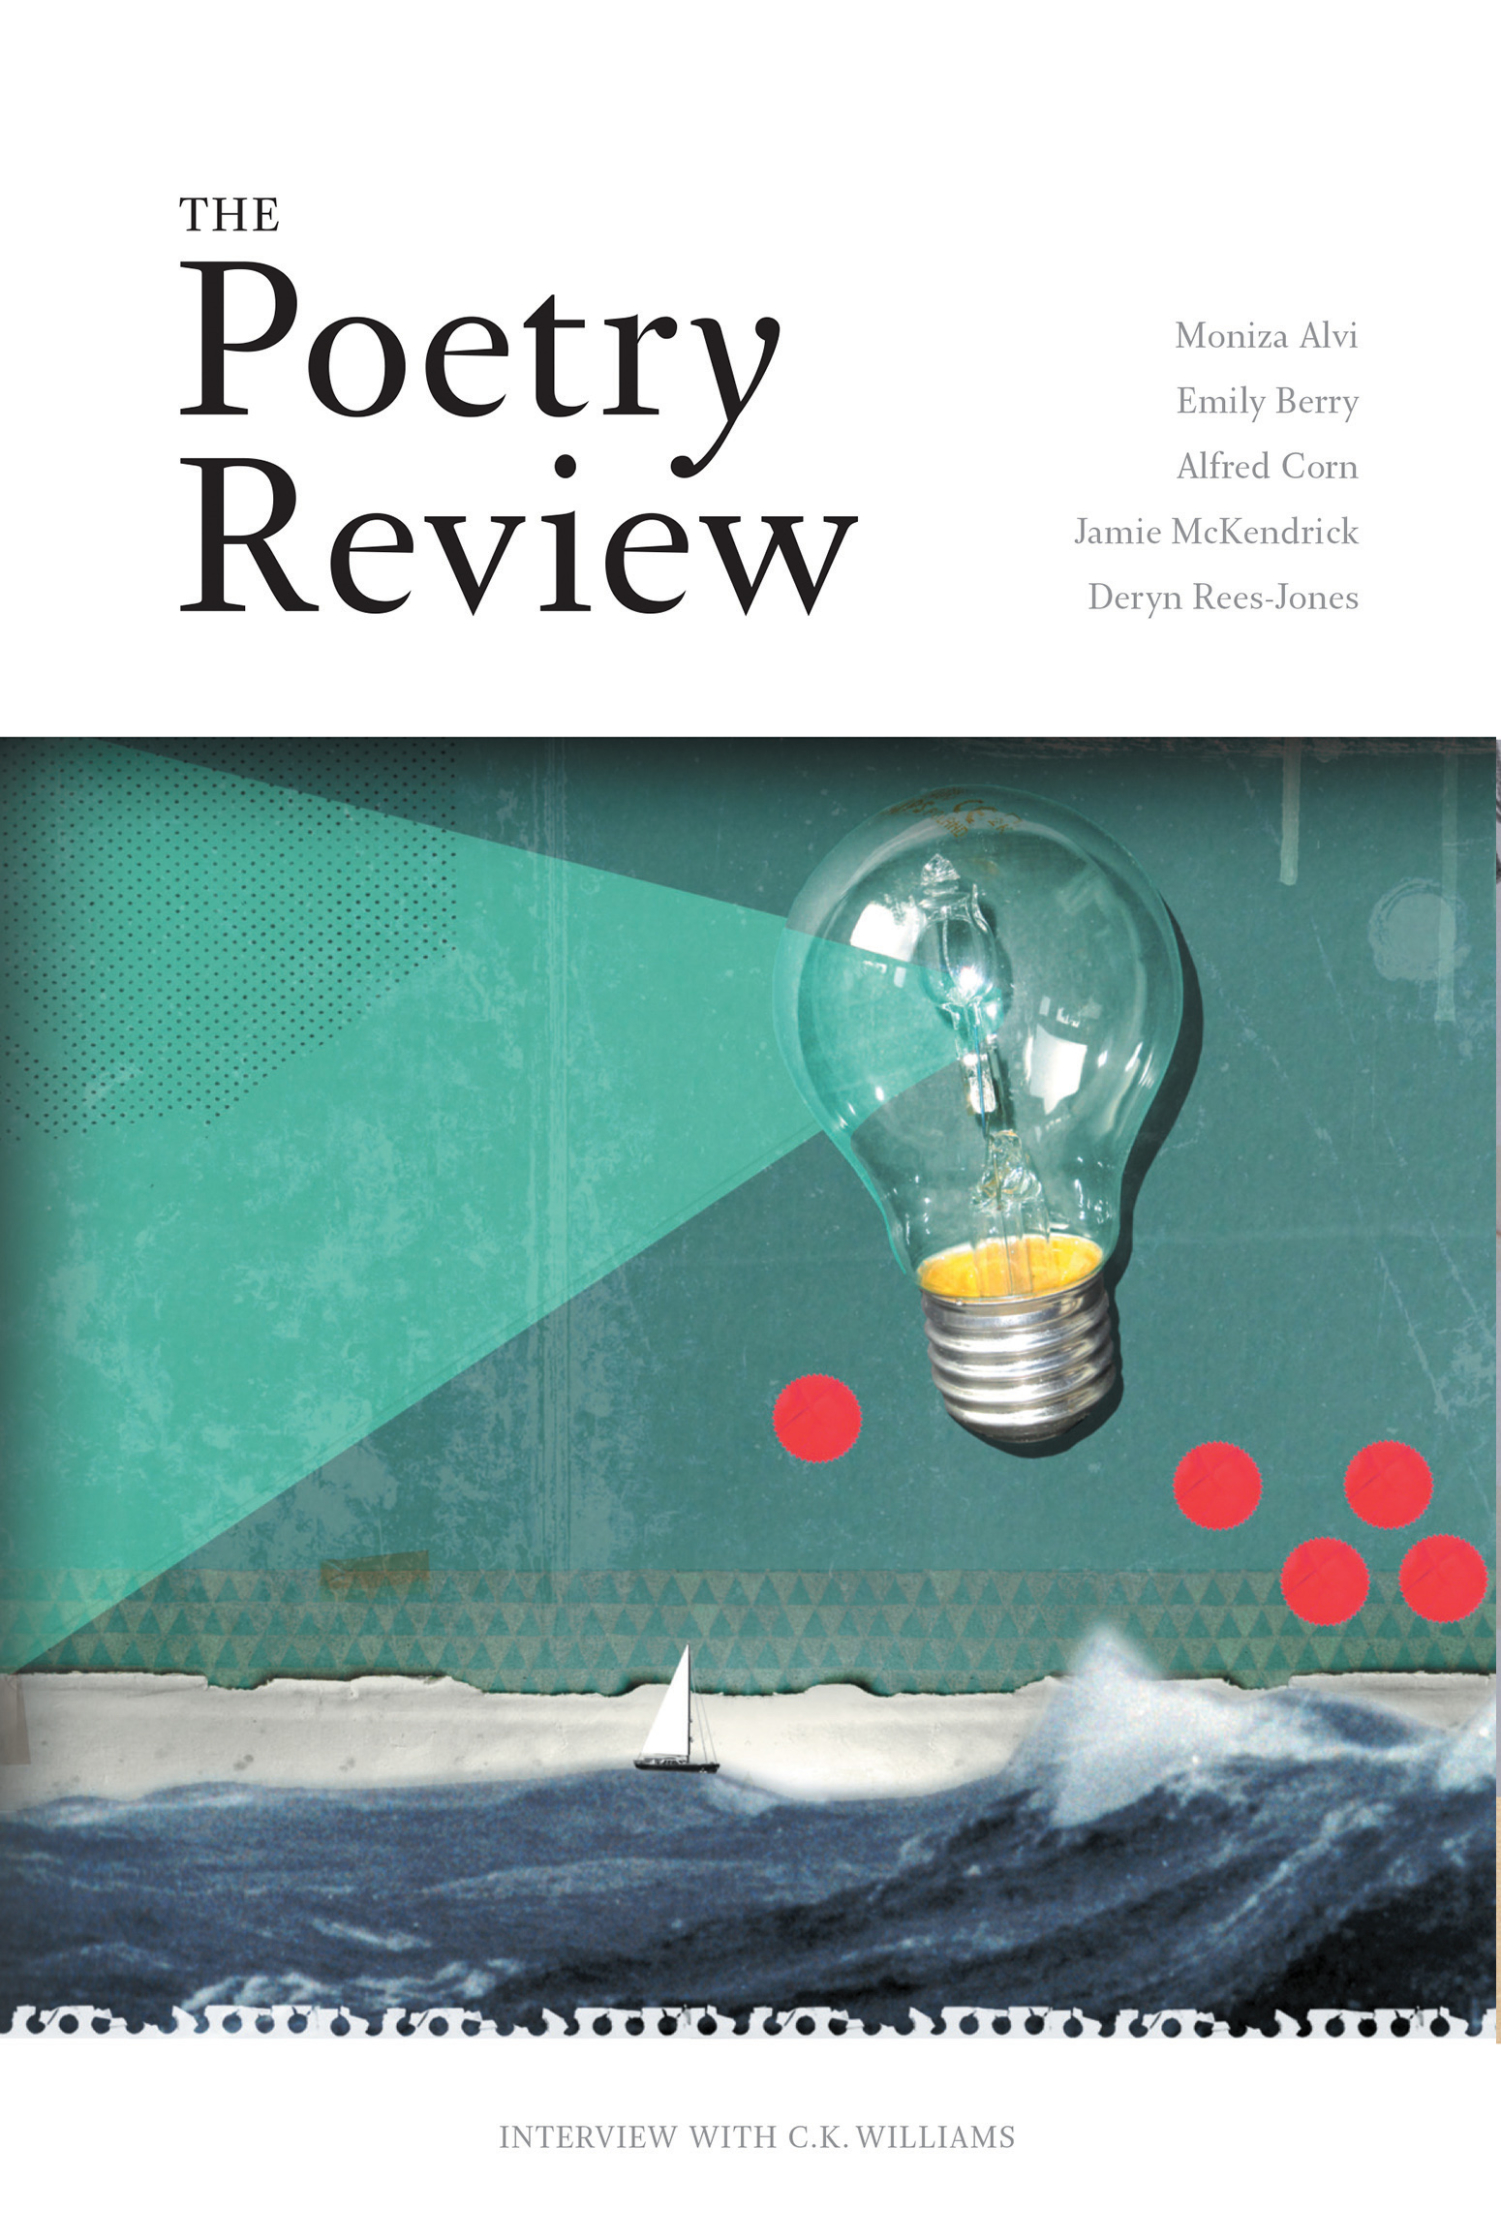 Hanson_Poetry Review_Winter Cover.jpg